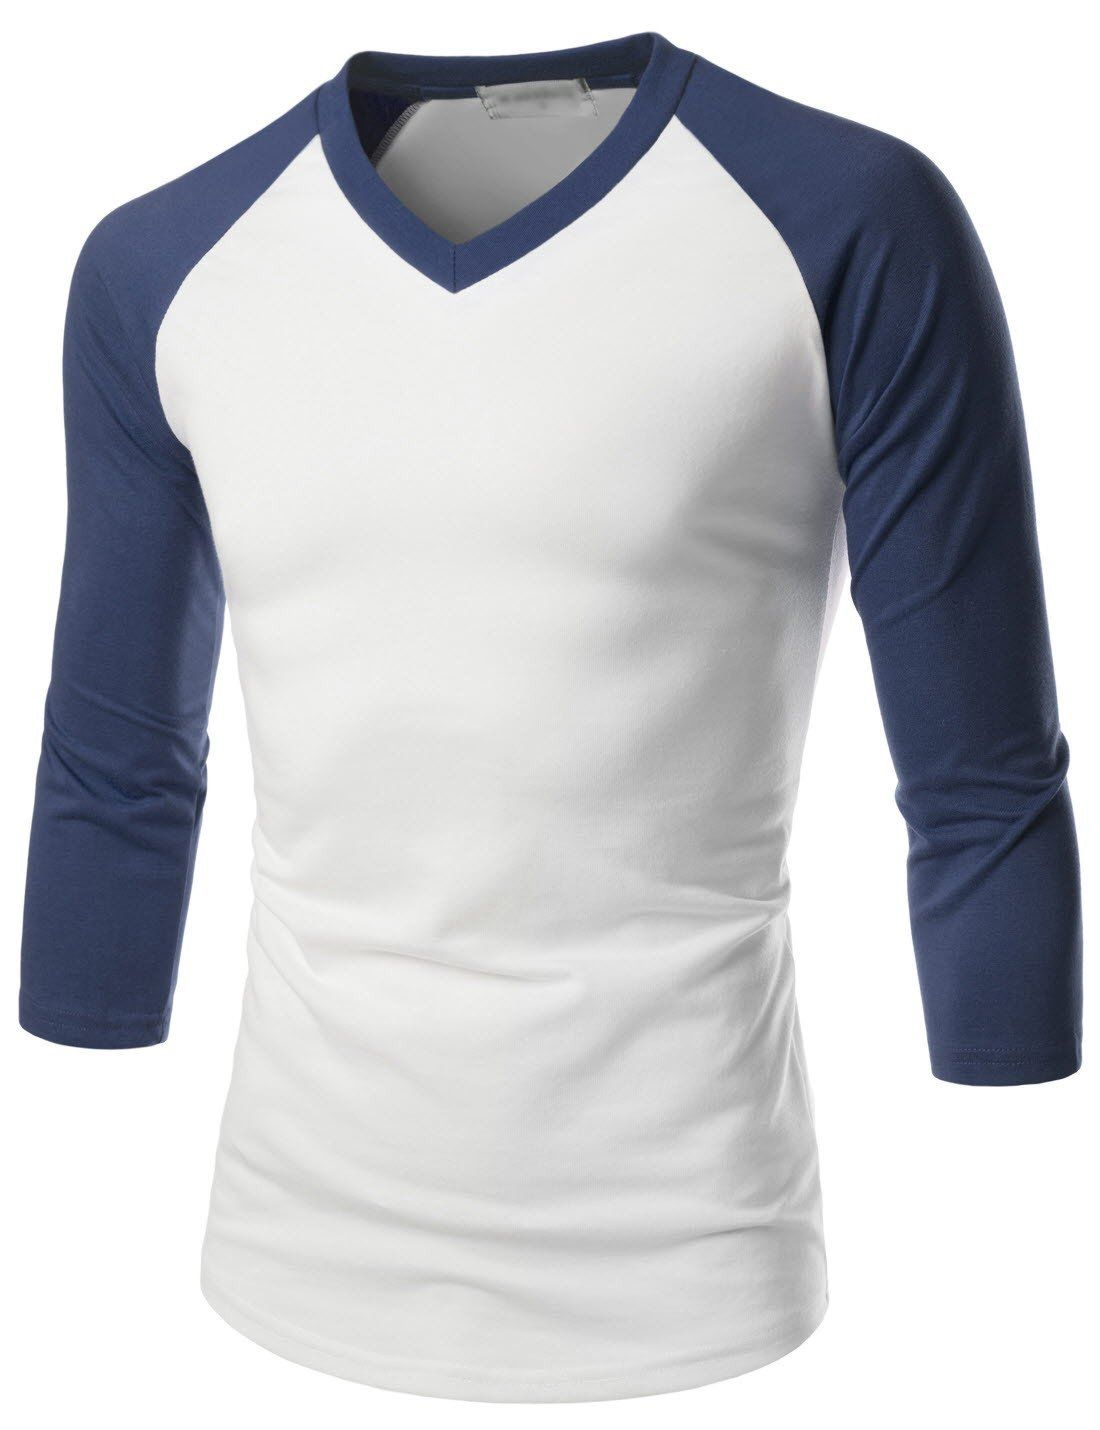 Two Color Dry Fit Mens Long Sleeve 3 4 Length Shirts 3 4